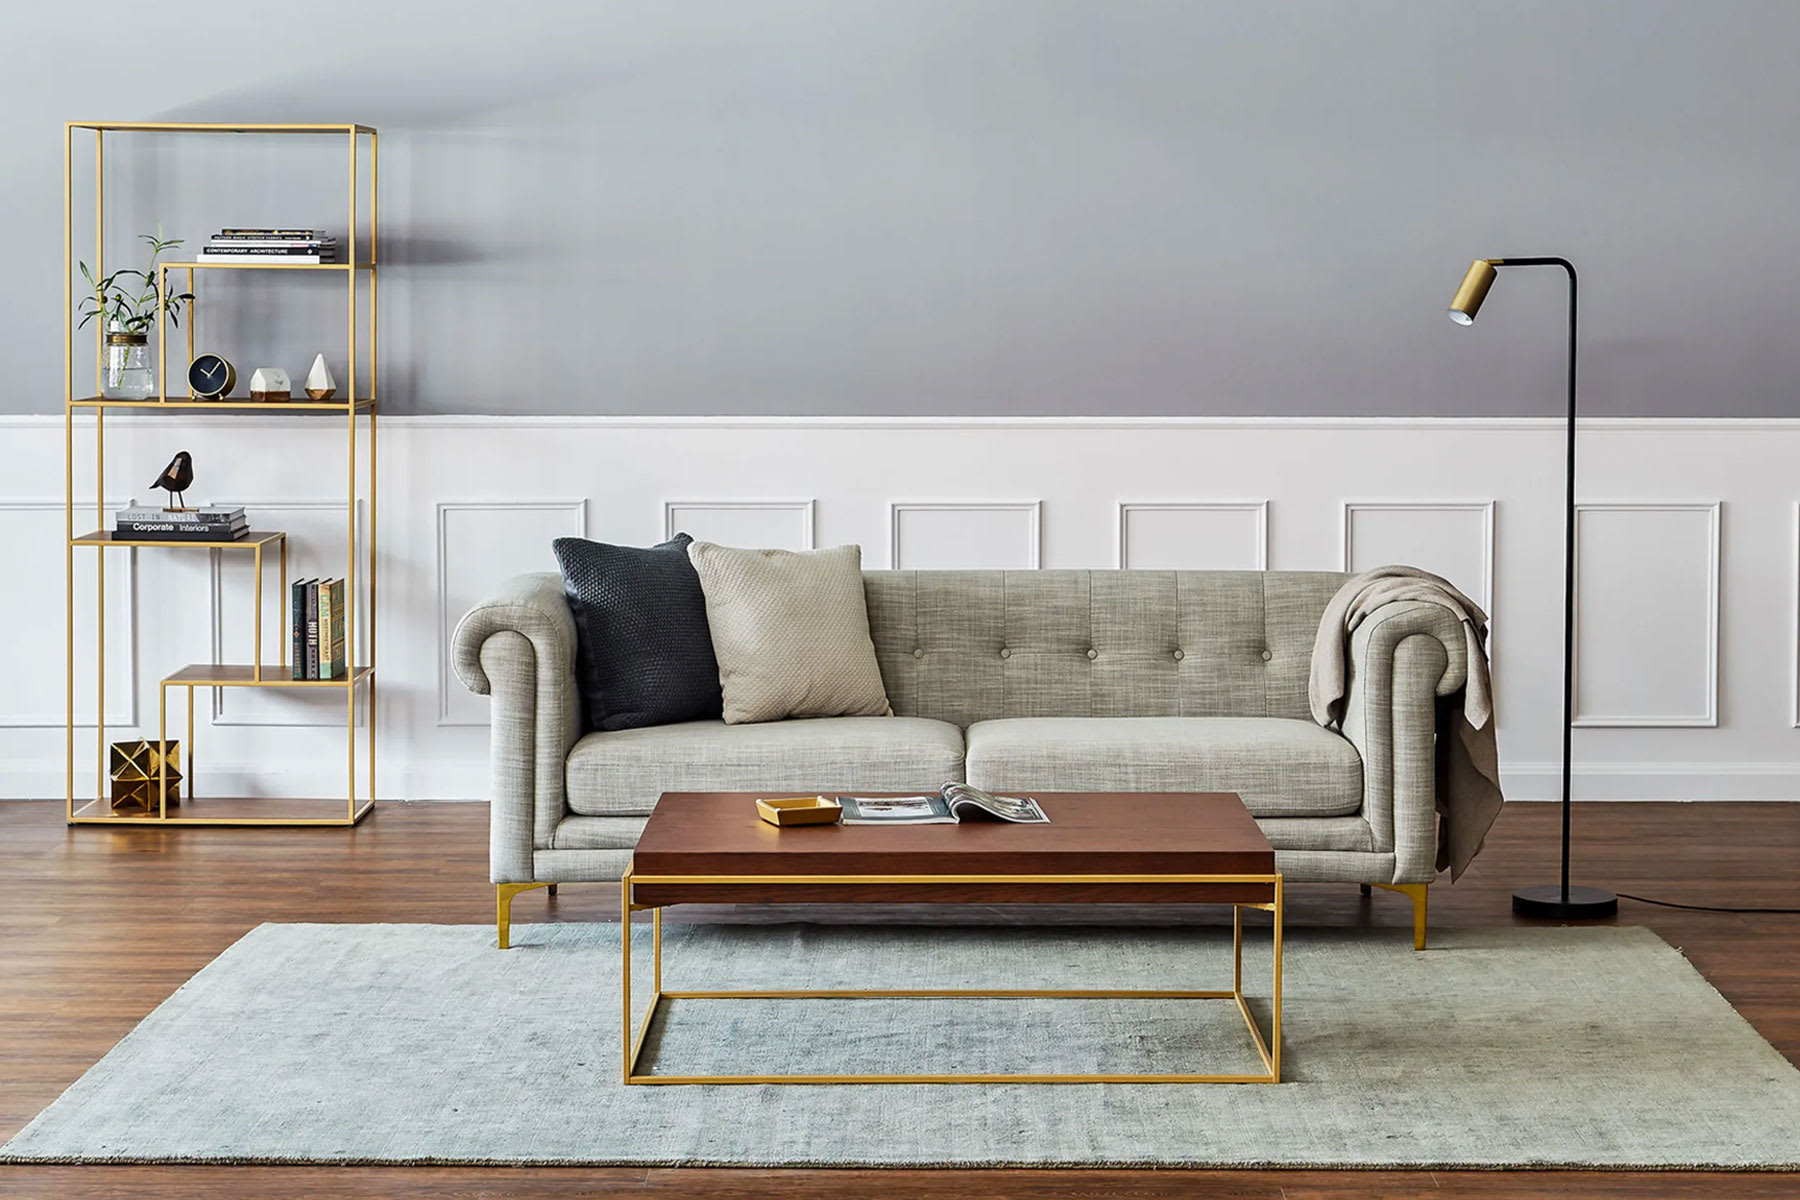 mid-century modern living room with sofa, coffee table and shelf